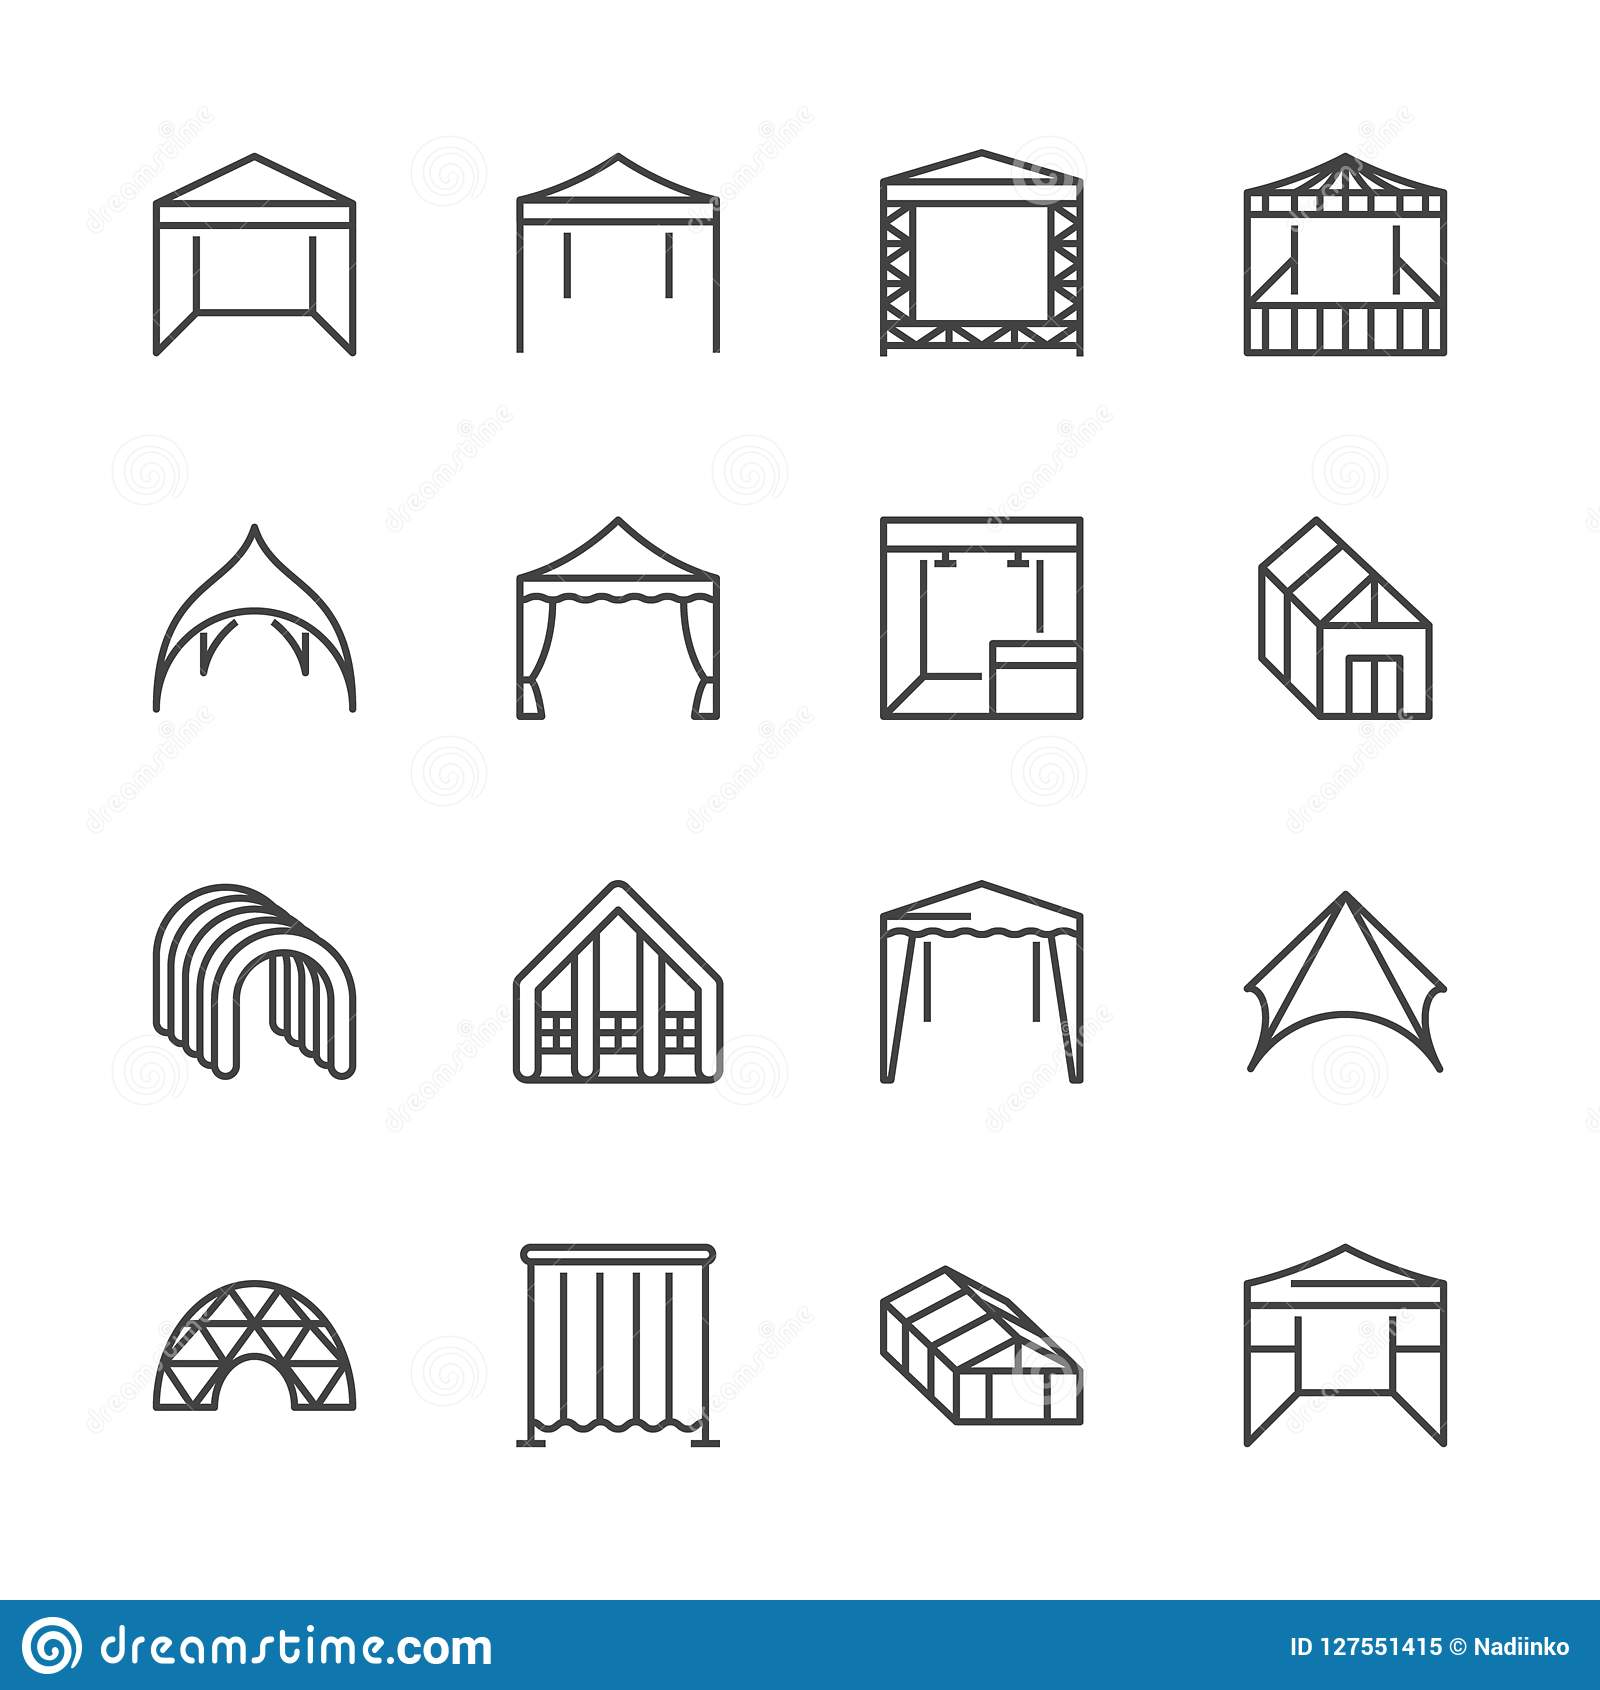 tent flat line icons event pavilion trade show awning outdoor wedding marquee canopy vector illustrations thin signs mobile 127551415 tent flat line icons event pavilion, trade show awning, outdoor